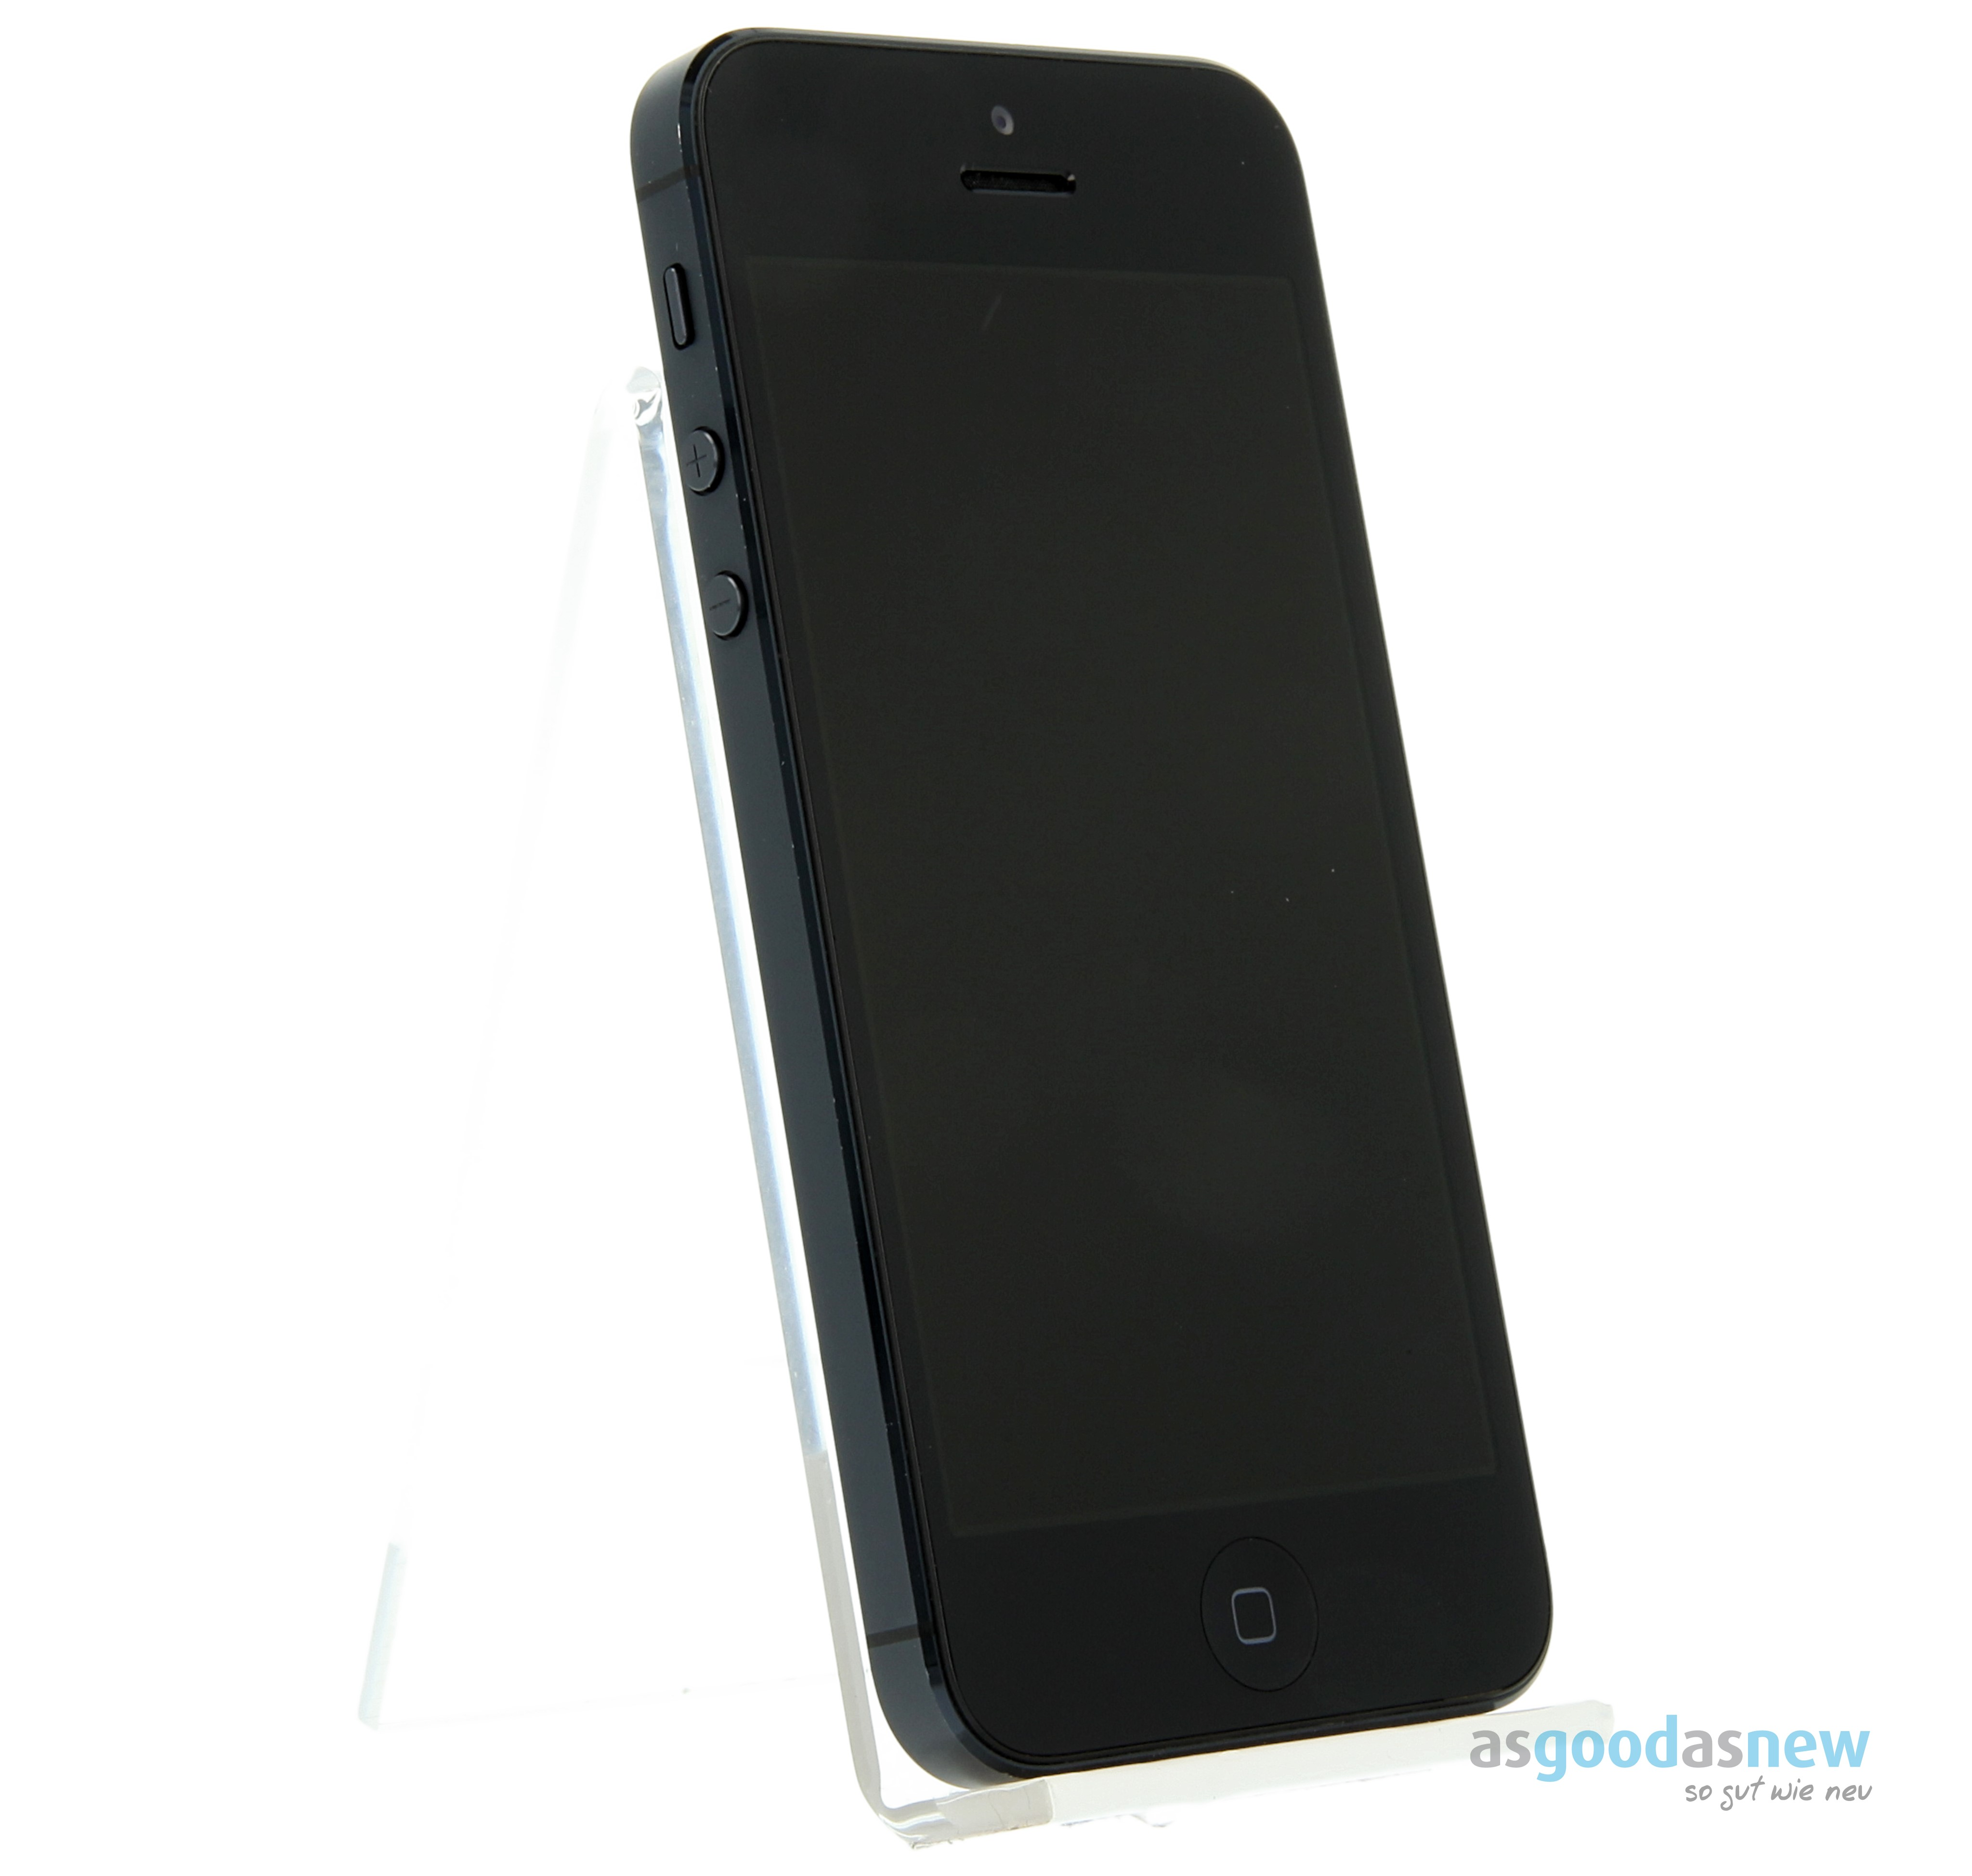 Apple-iPhone-5-16-GB-Schwarz-Graphit-DE-T-Mobile-SIMLOCK-in-OVP-TOP-880801